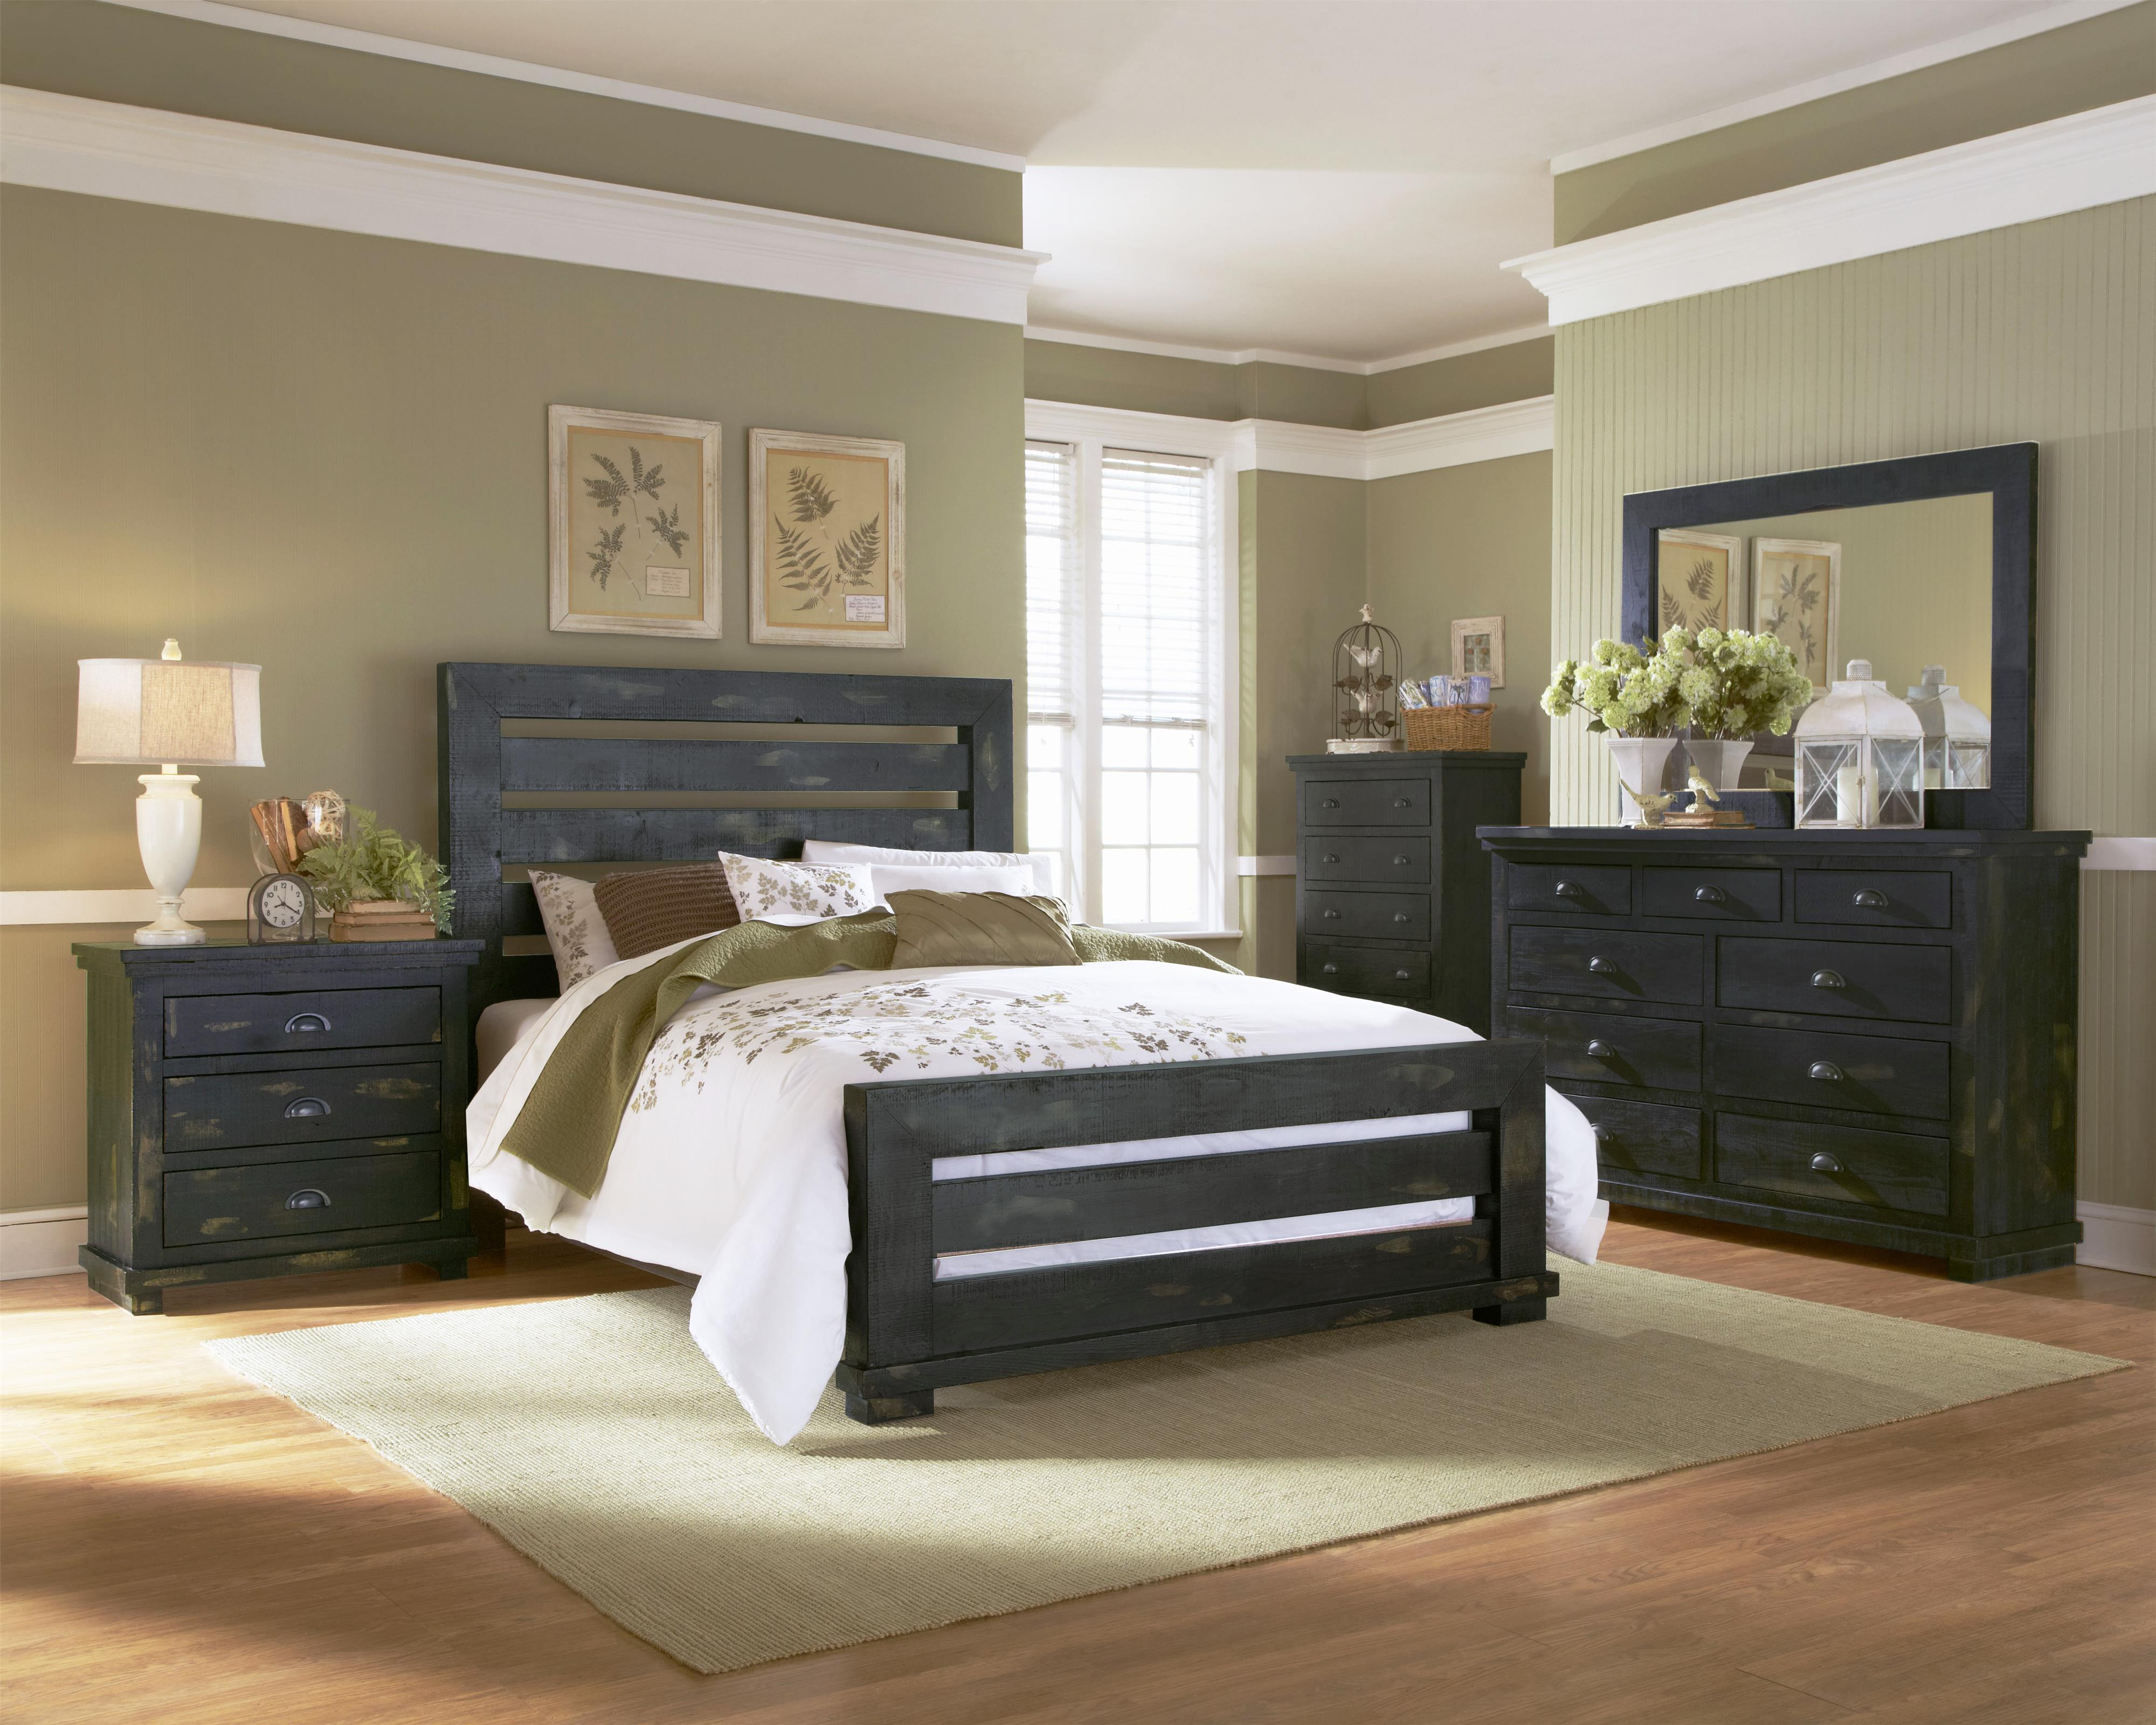 Willow King Bedroom Group by Progressive Furniture at Bullard Furniture